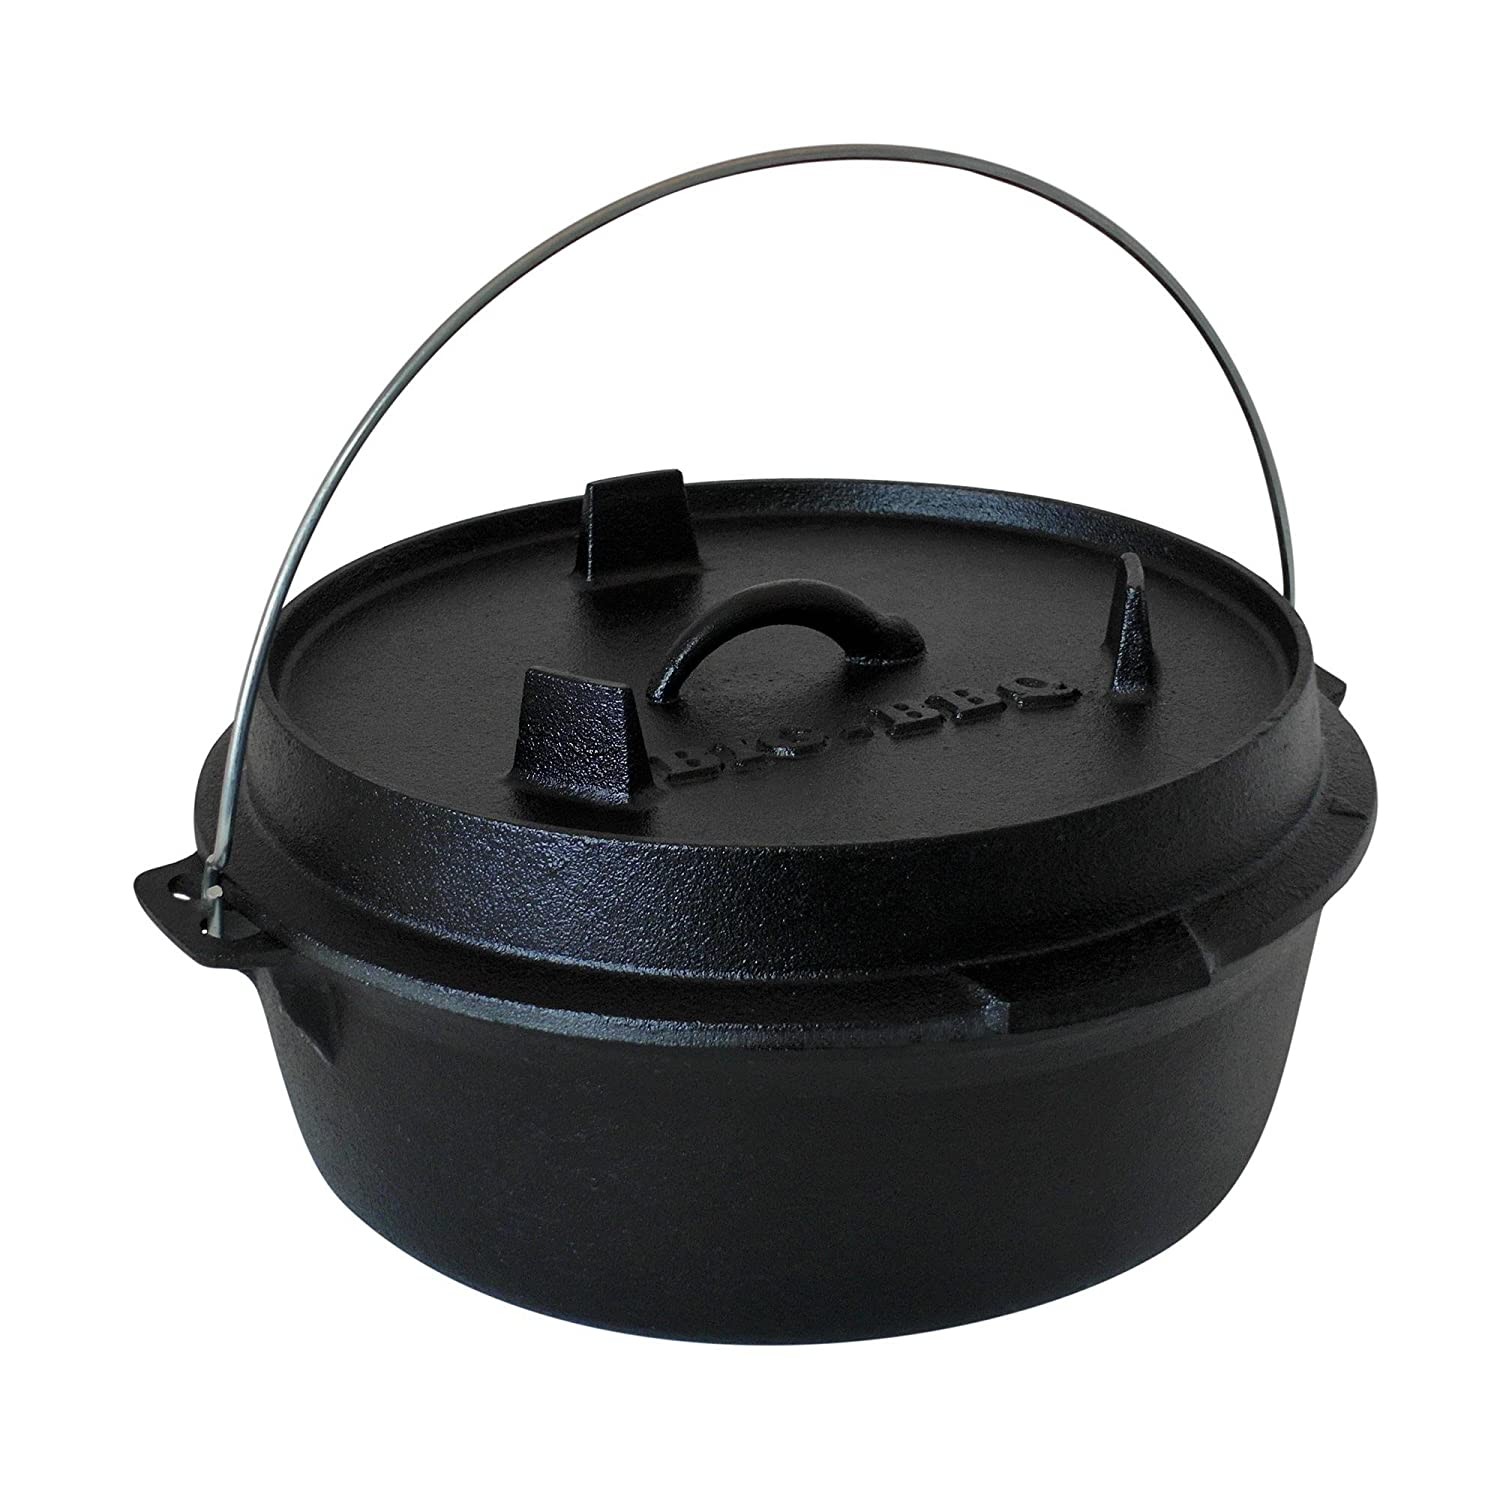 ToCis Big BBQ DO 4.5 Premium Dutch-Oven made of cast-iron | Pre-Seasoned 10' cast iron cooking pot | with lid lifter and lid stand | without legs